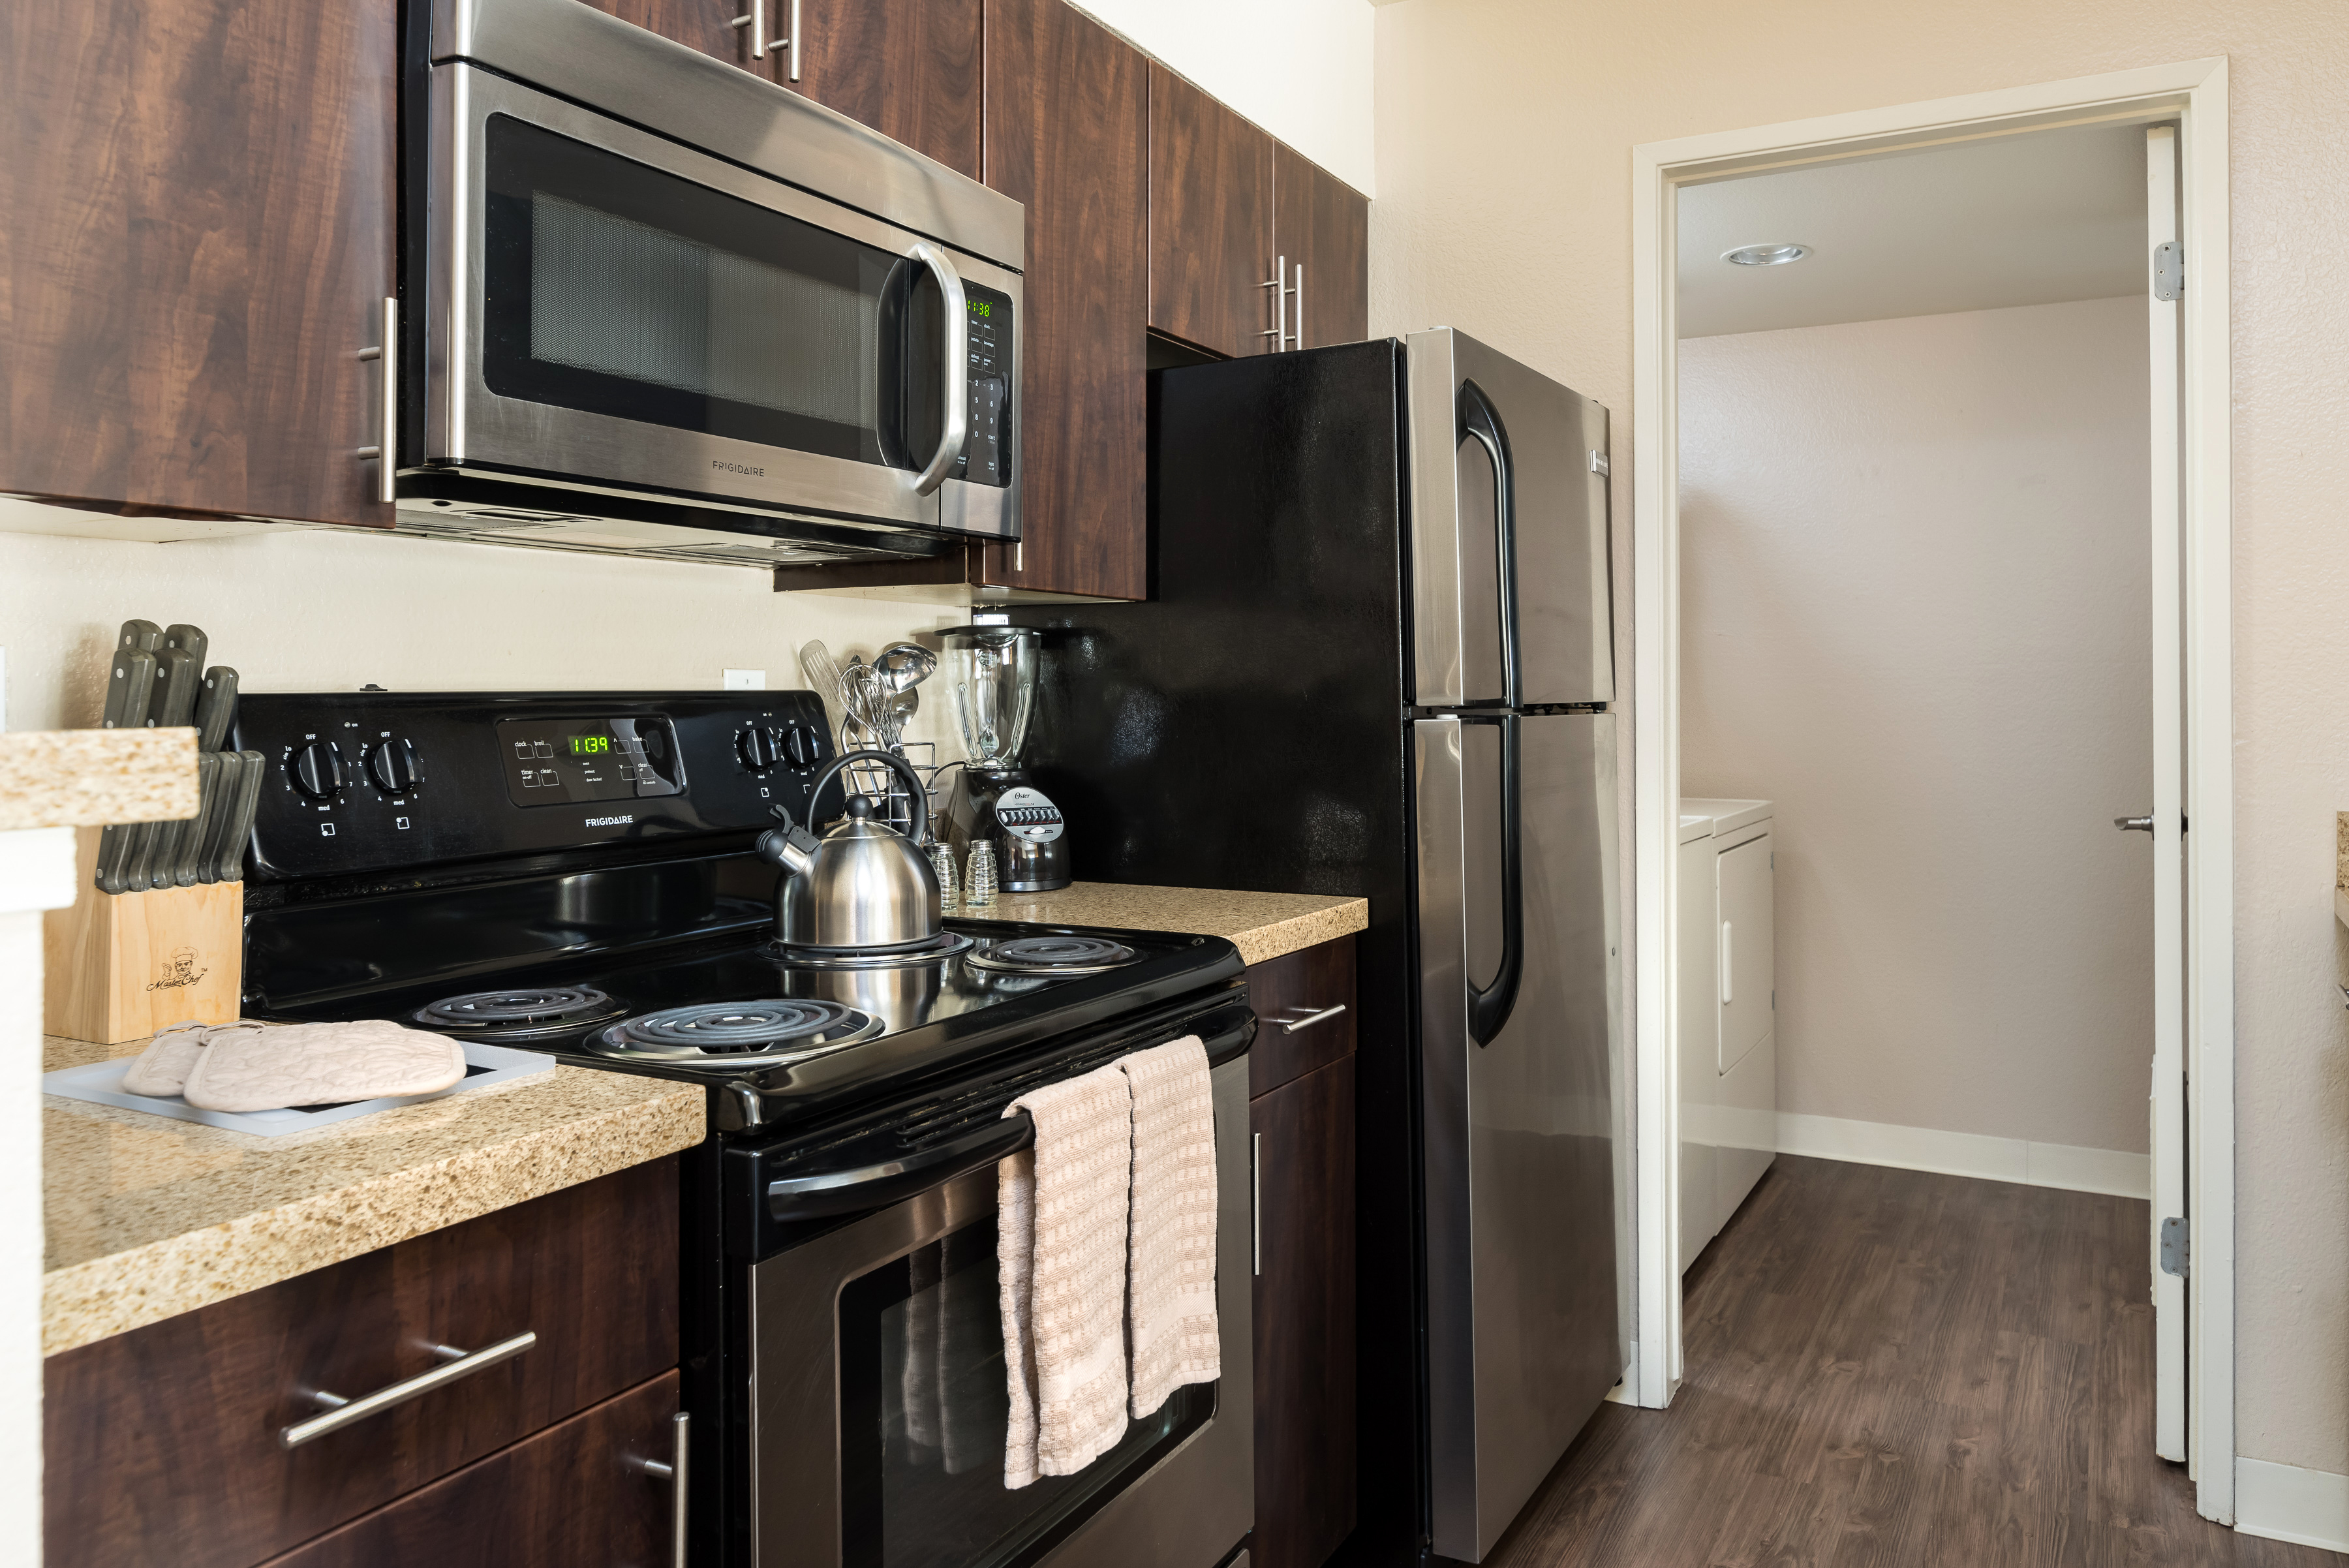 image 6 furnished 2 bedroom Apartment for rent in San Ramon, Contra Costa County